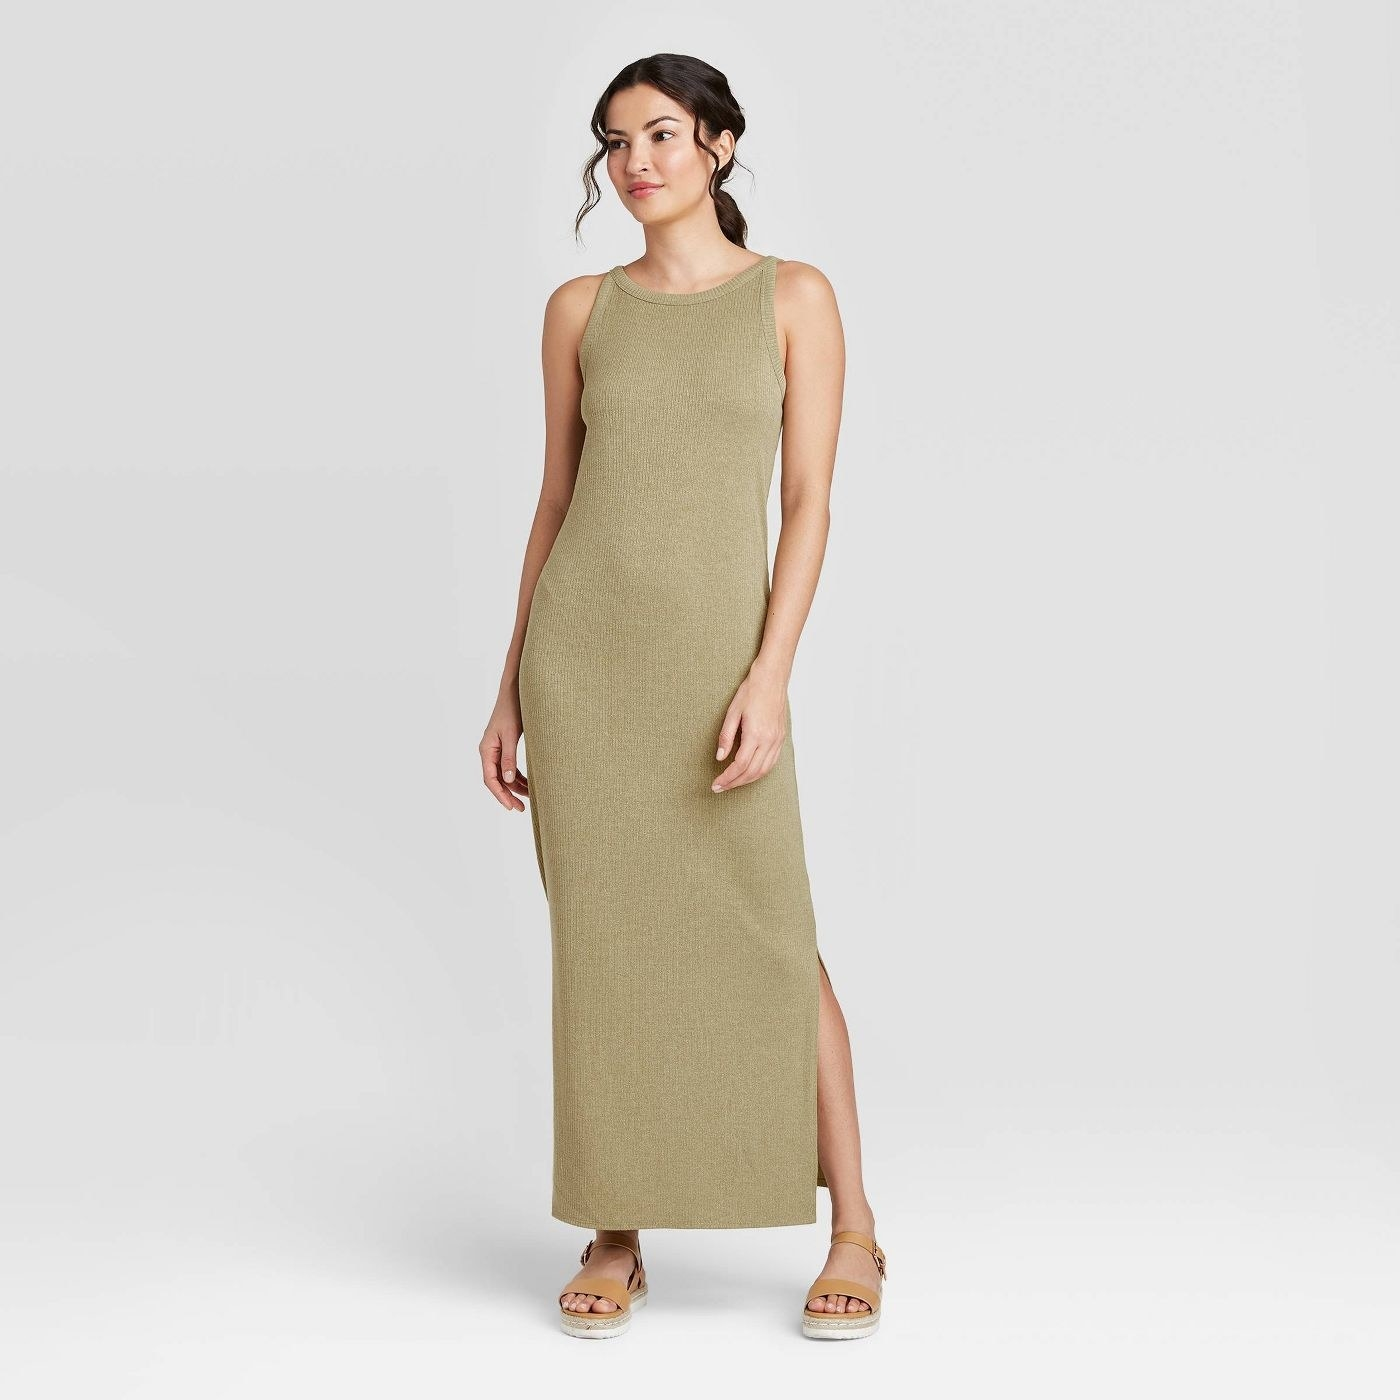 A model in a pale green sleeveless dress with slits at the hem